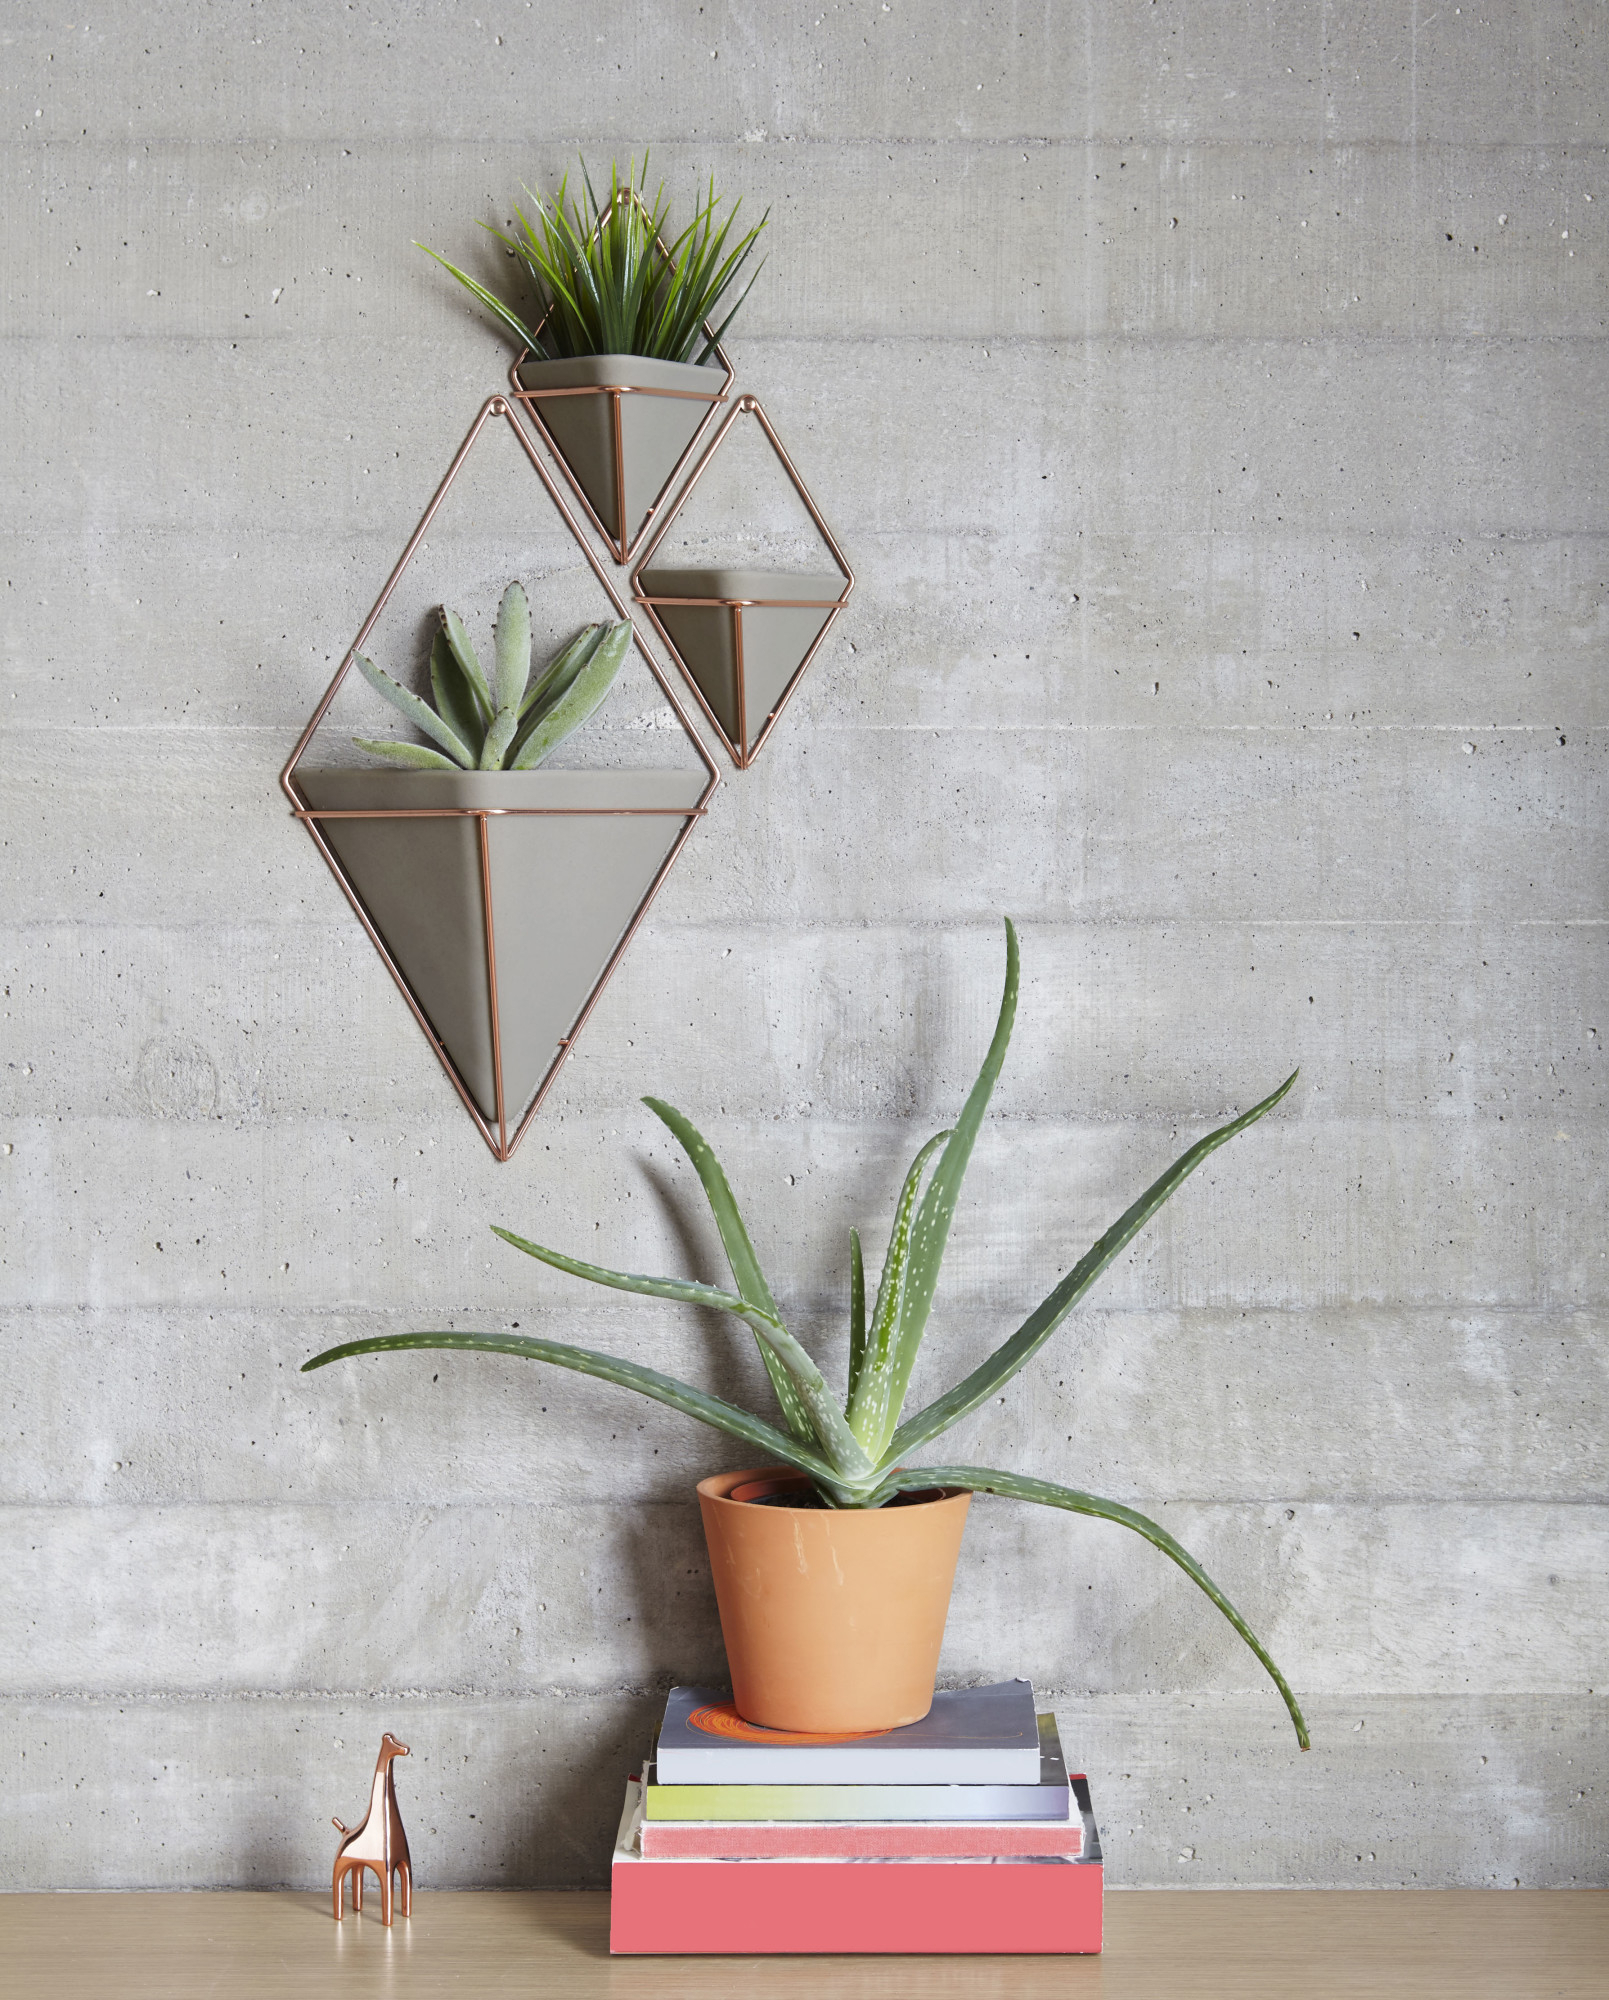 Details About Umbra 470753 Trigg Two Piece Concrete Wall Mounted Planter  Set With Metal Frame Throughout 2 Piece Trigg Wall Decor Sets (Set Of 2) (Photo 28 of 30)